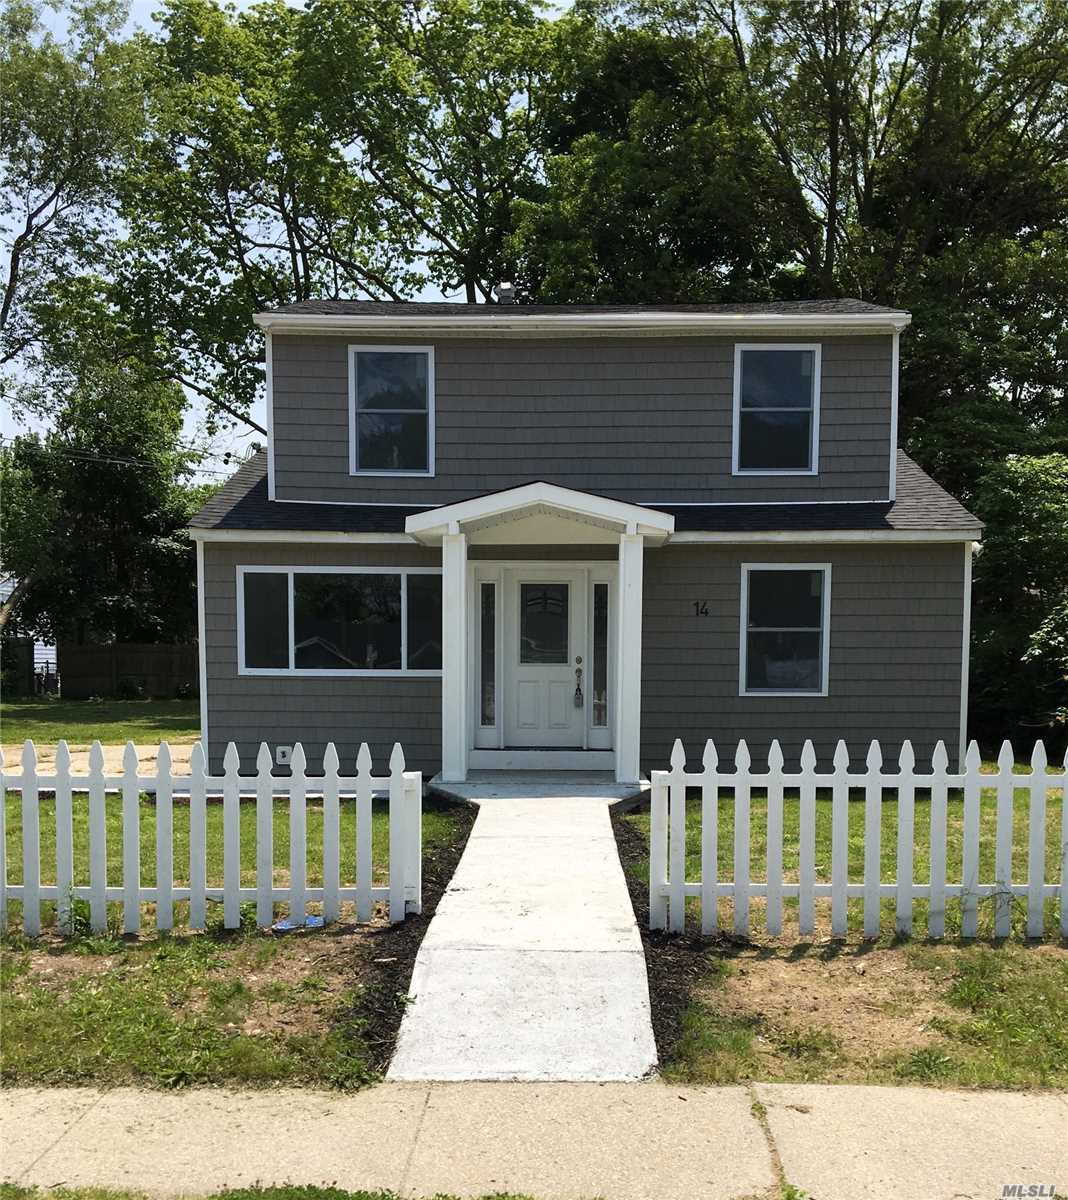 Fully Renovated 5Br/6Br, 3 Full Baths 1526 Sq Ft House. New Roof, Siding, Electric, Windows, Doors, Ss Appliances, Etc. Has A First Level Master Br! 2 Additional First Level Br, And Full Bath For The Kids. The 2nd Level Has 2 Br, A Full Bath, A Laundry Room That Could Be Used A Bedroom Or Kitchen, And Separate Entrance.(2nd level can be used as a 2 bedroom or large one bedroom apartment w proper permits) Brand New Hardwood Floors, With Marble Floors In The Bathrooms